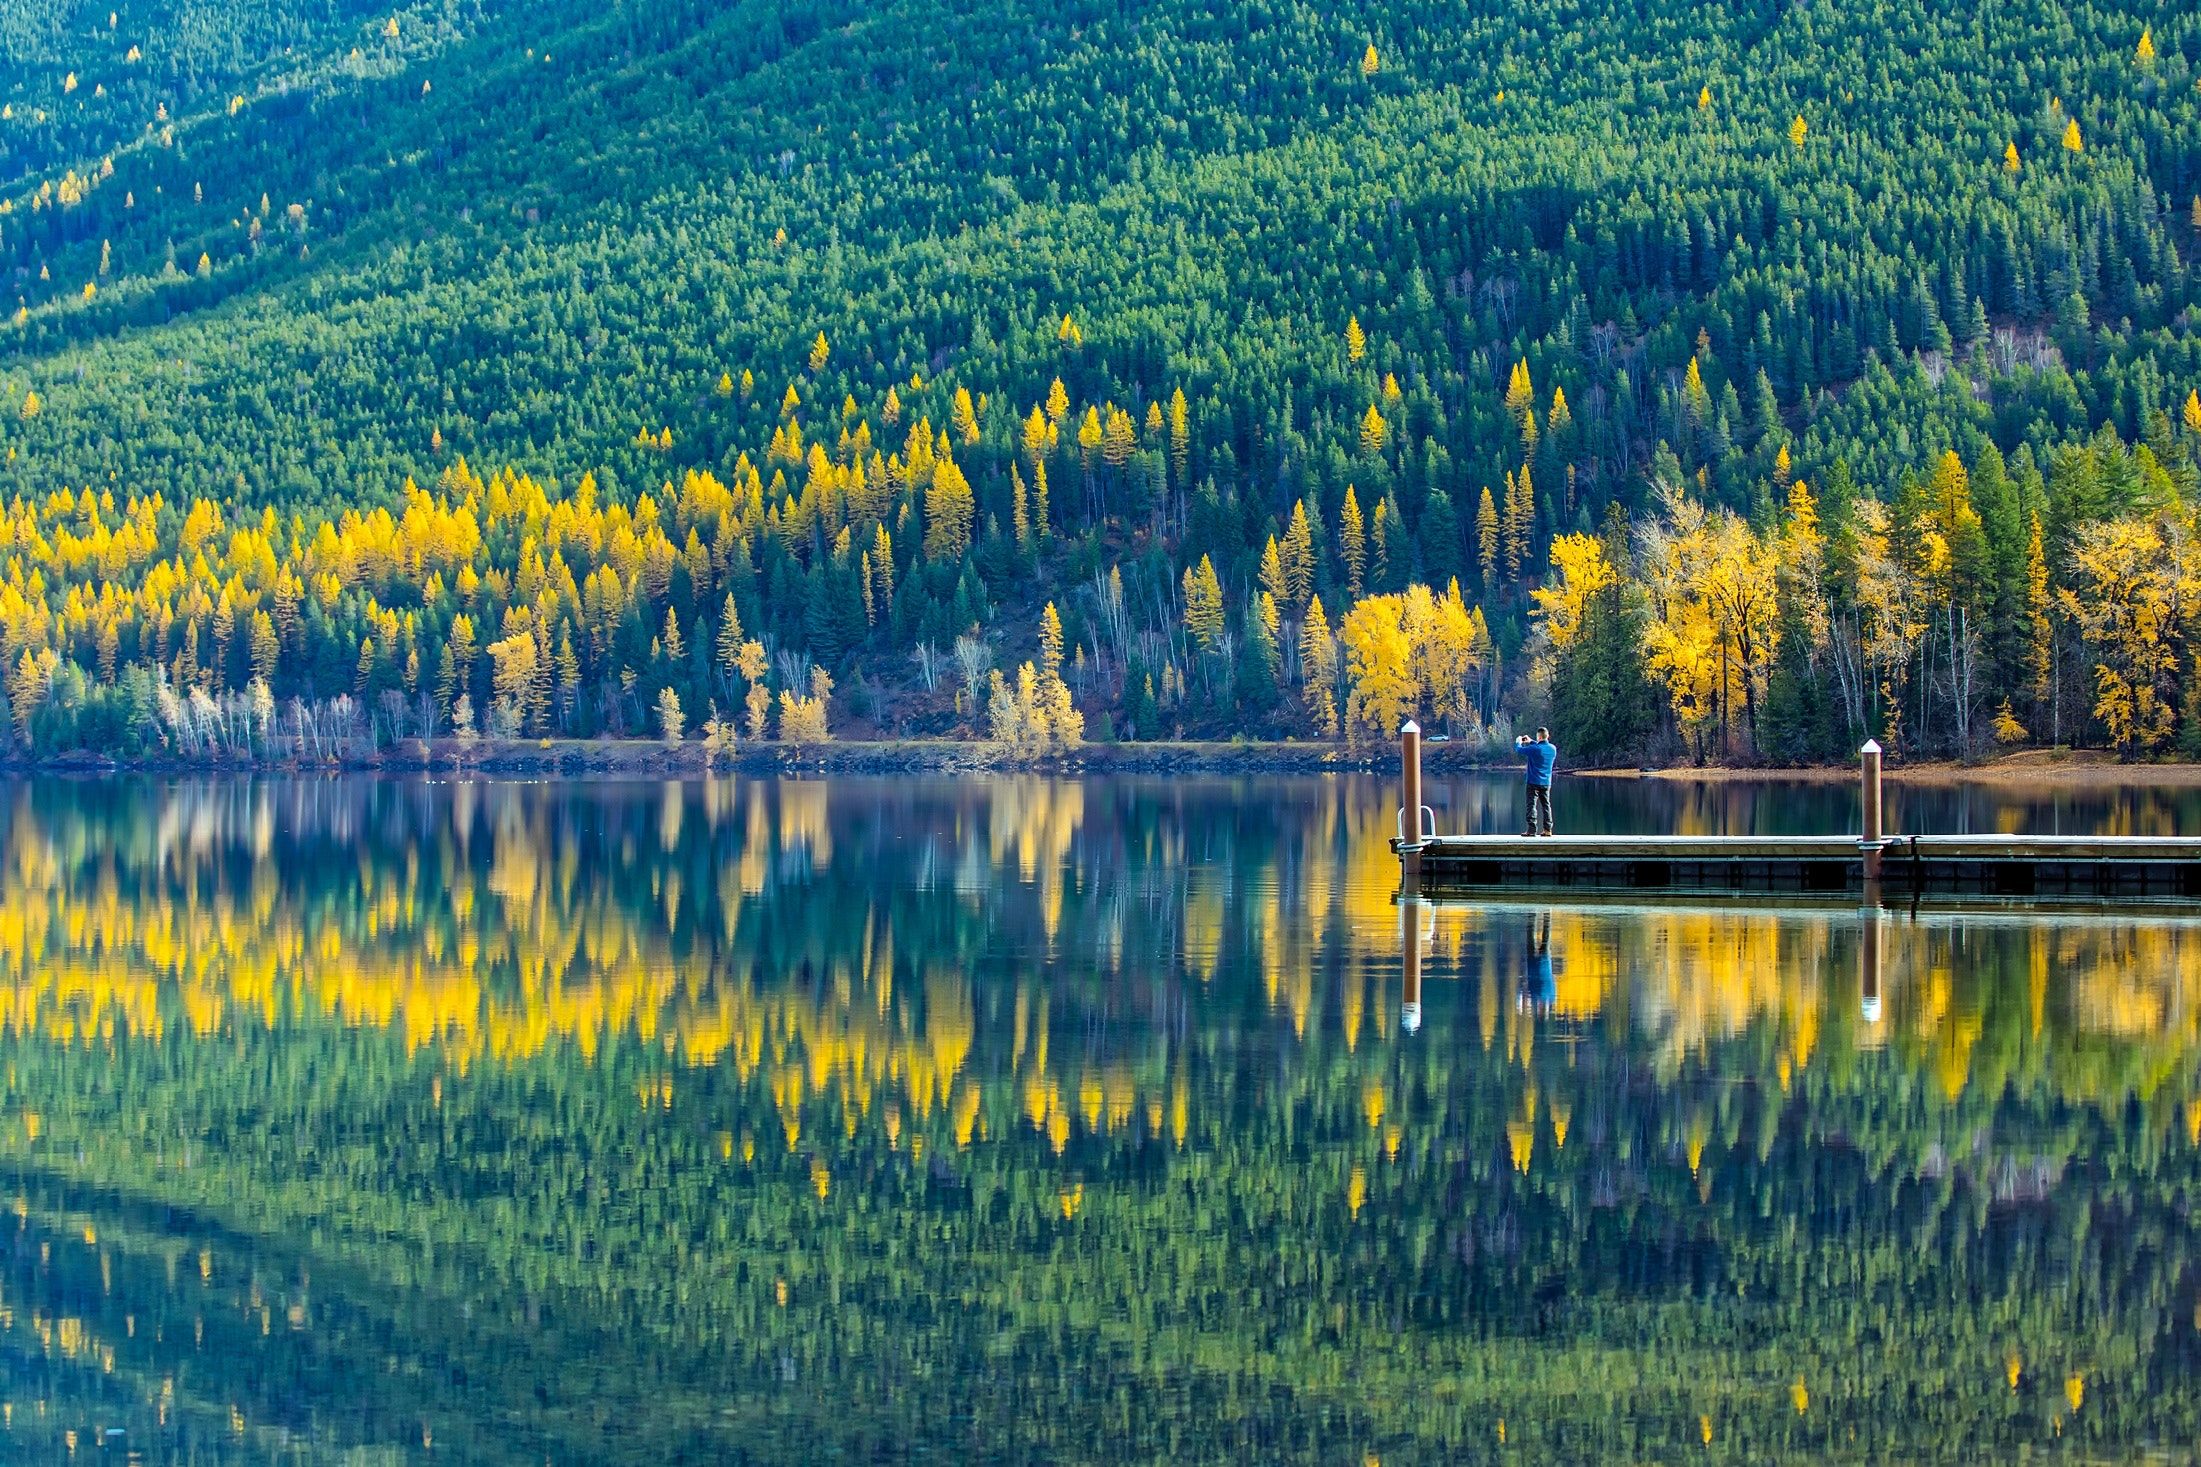 Reflection of trees in lake photo